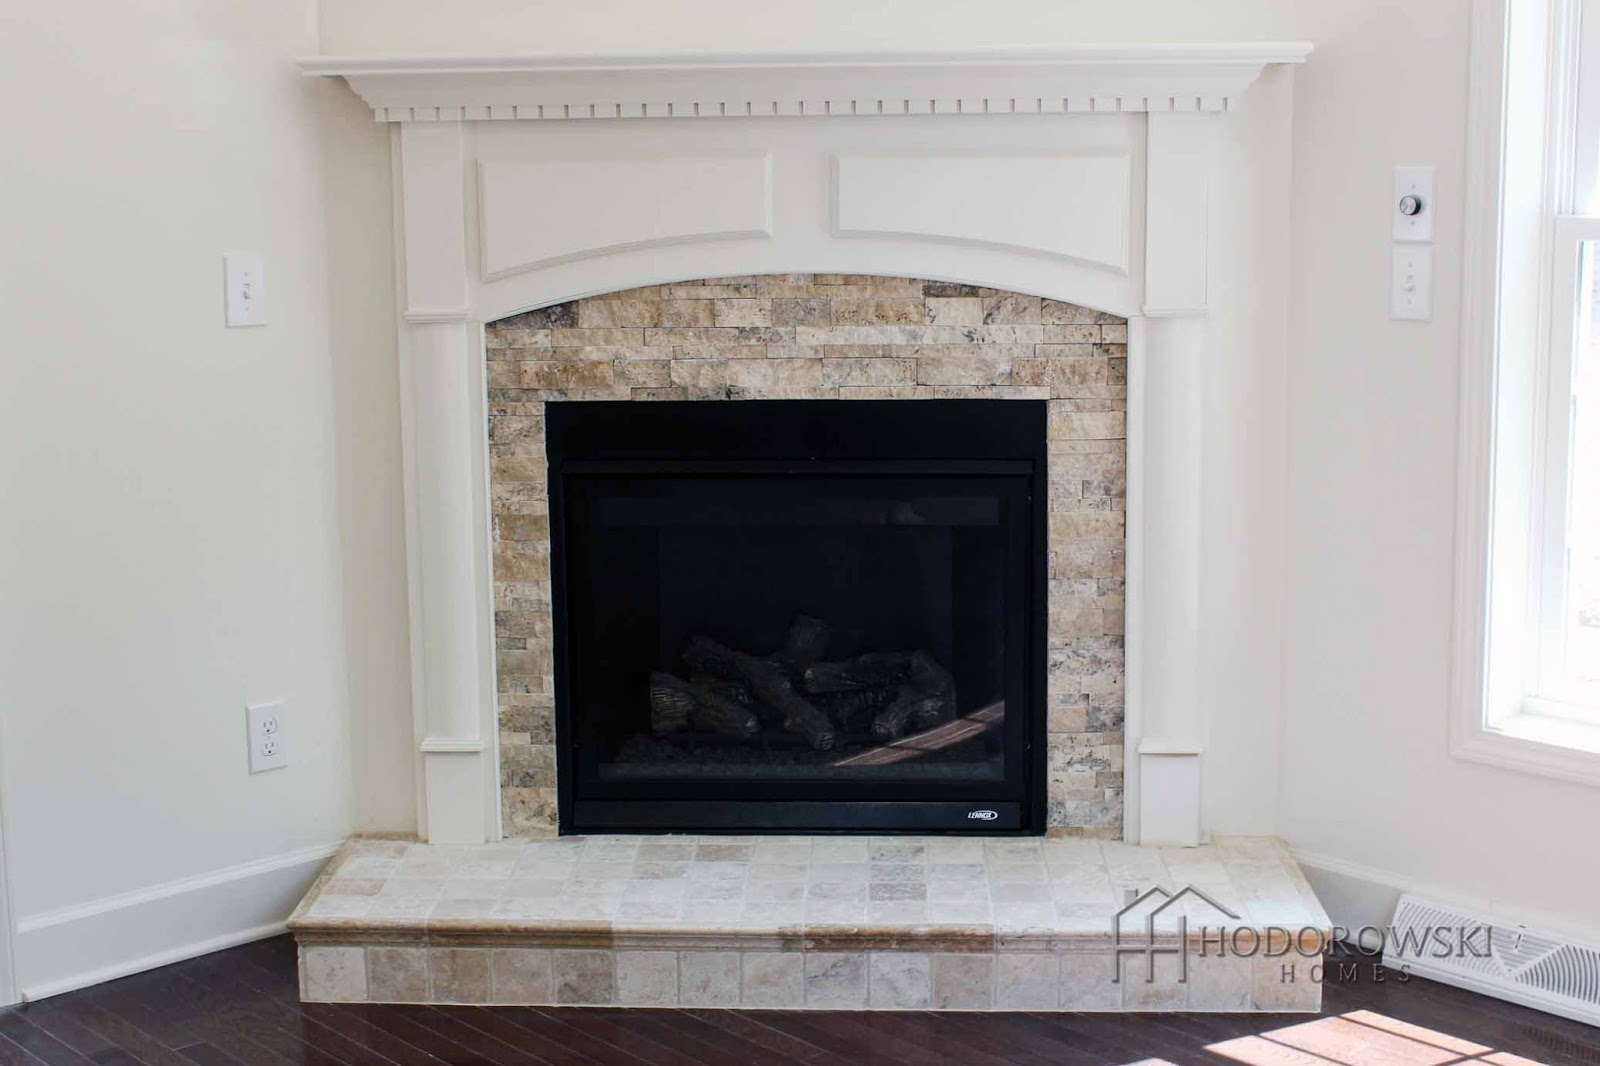 hodorowski homes warm up by the fireplace